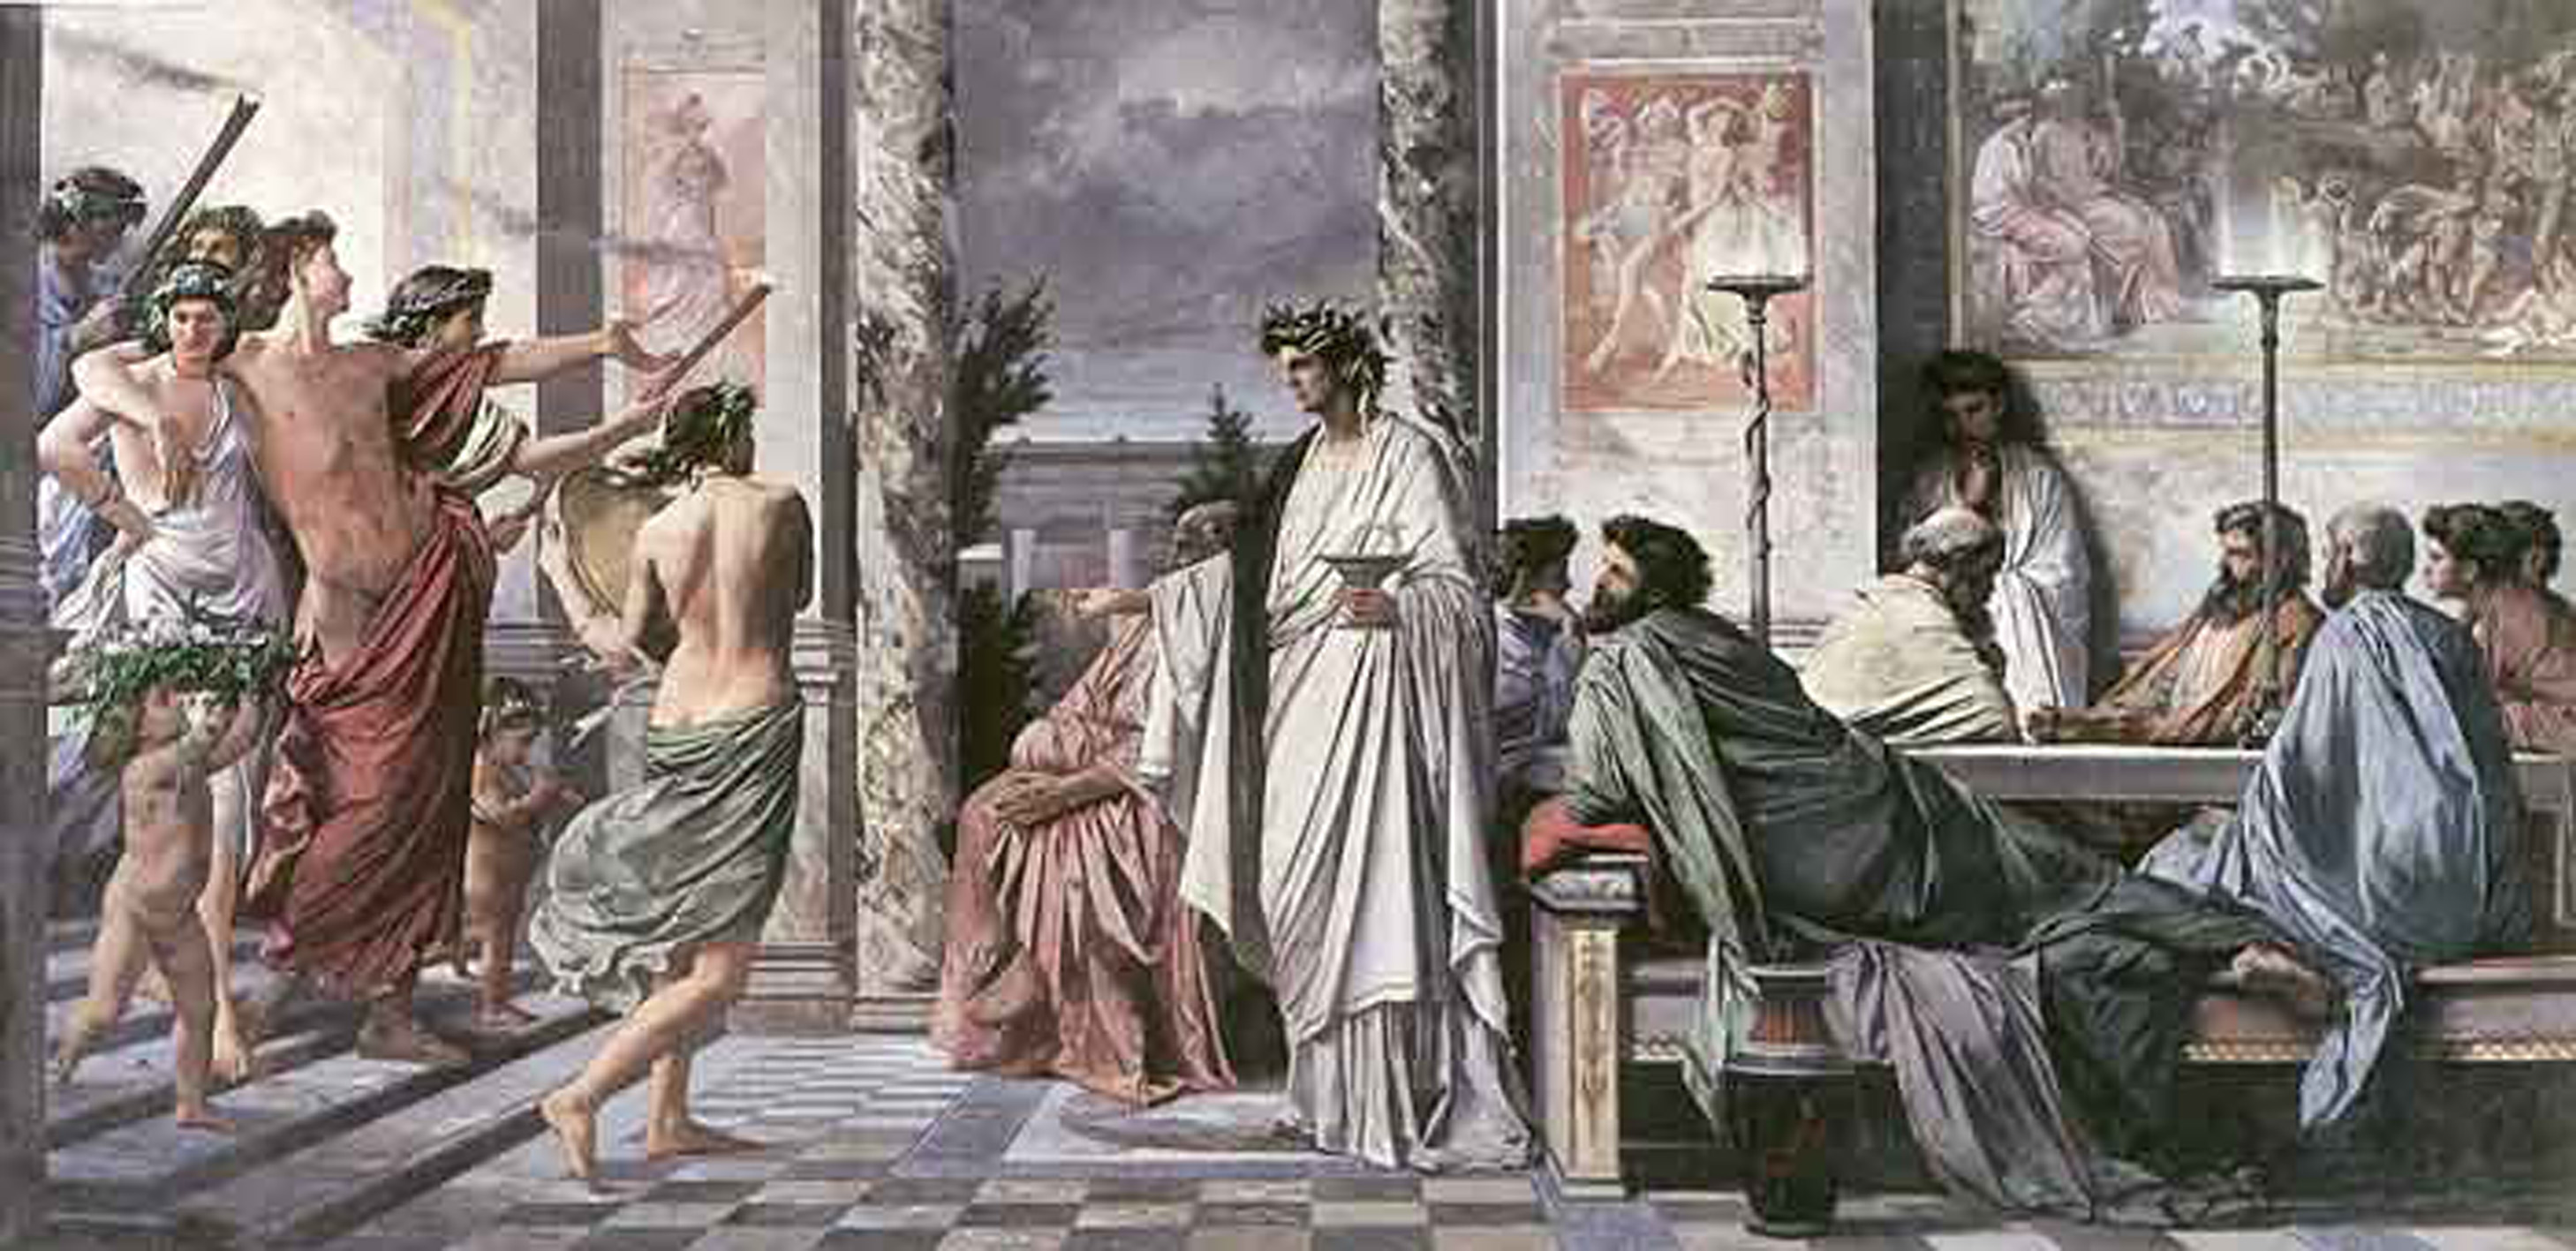 plato symposium diotima At some point in socrates' life, he comes into contact with diotima, one of the few female philosophers in the platonic corpus (re: symposium.